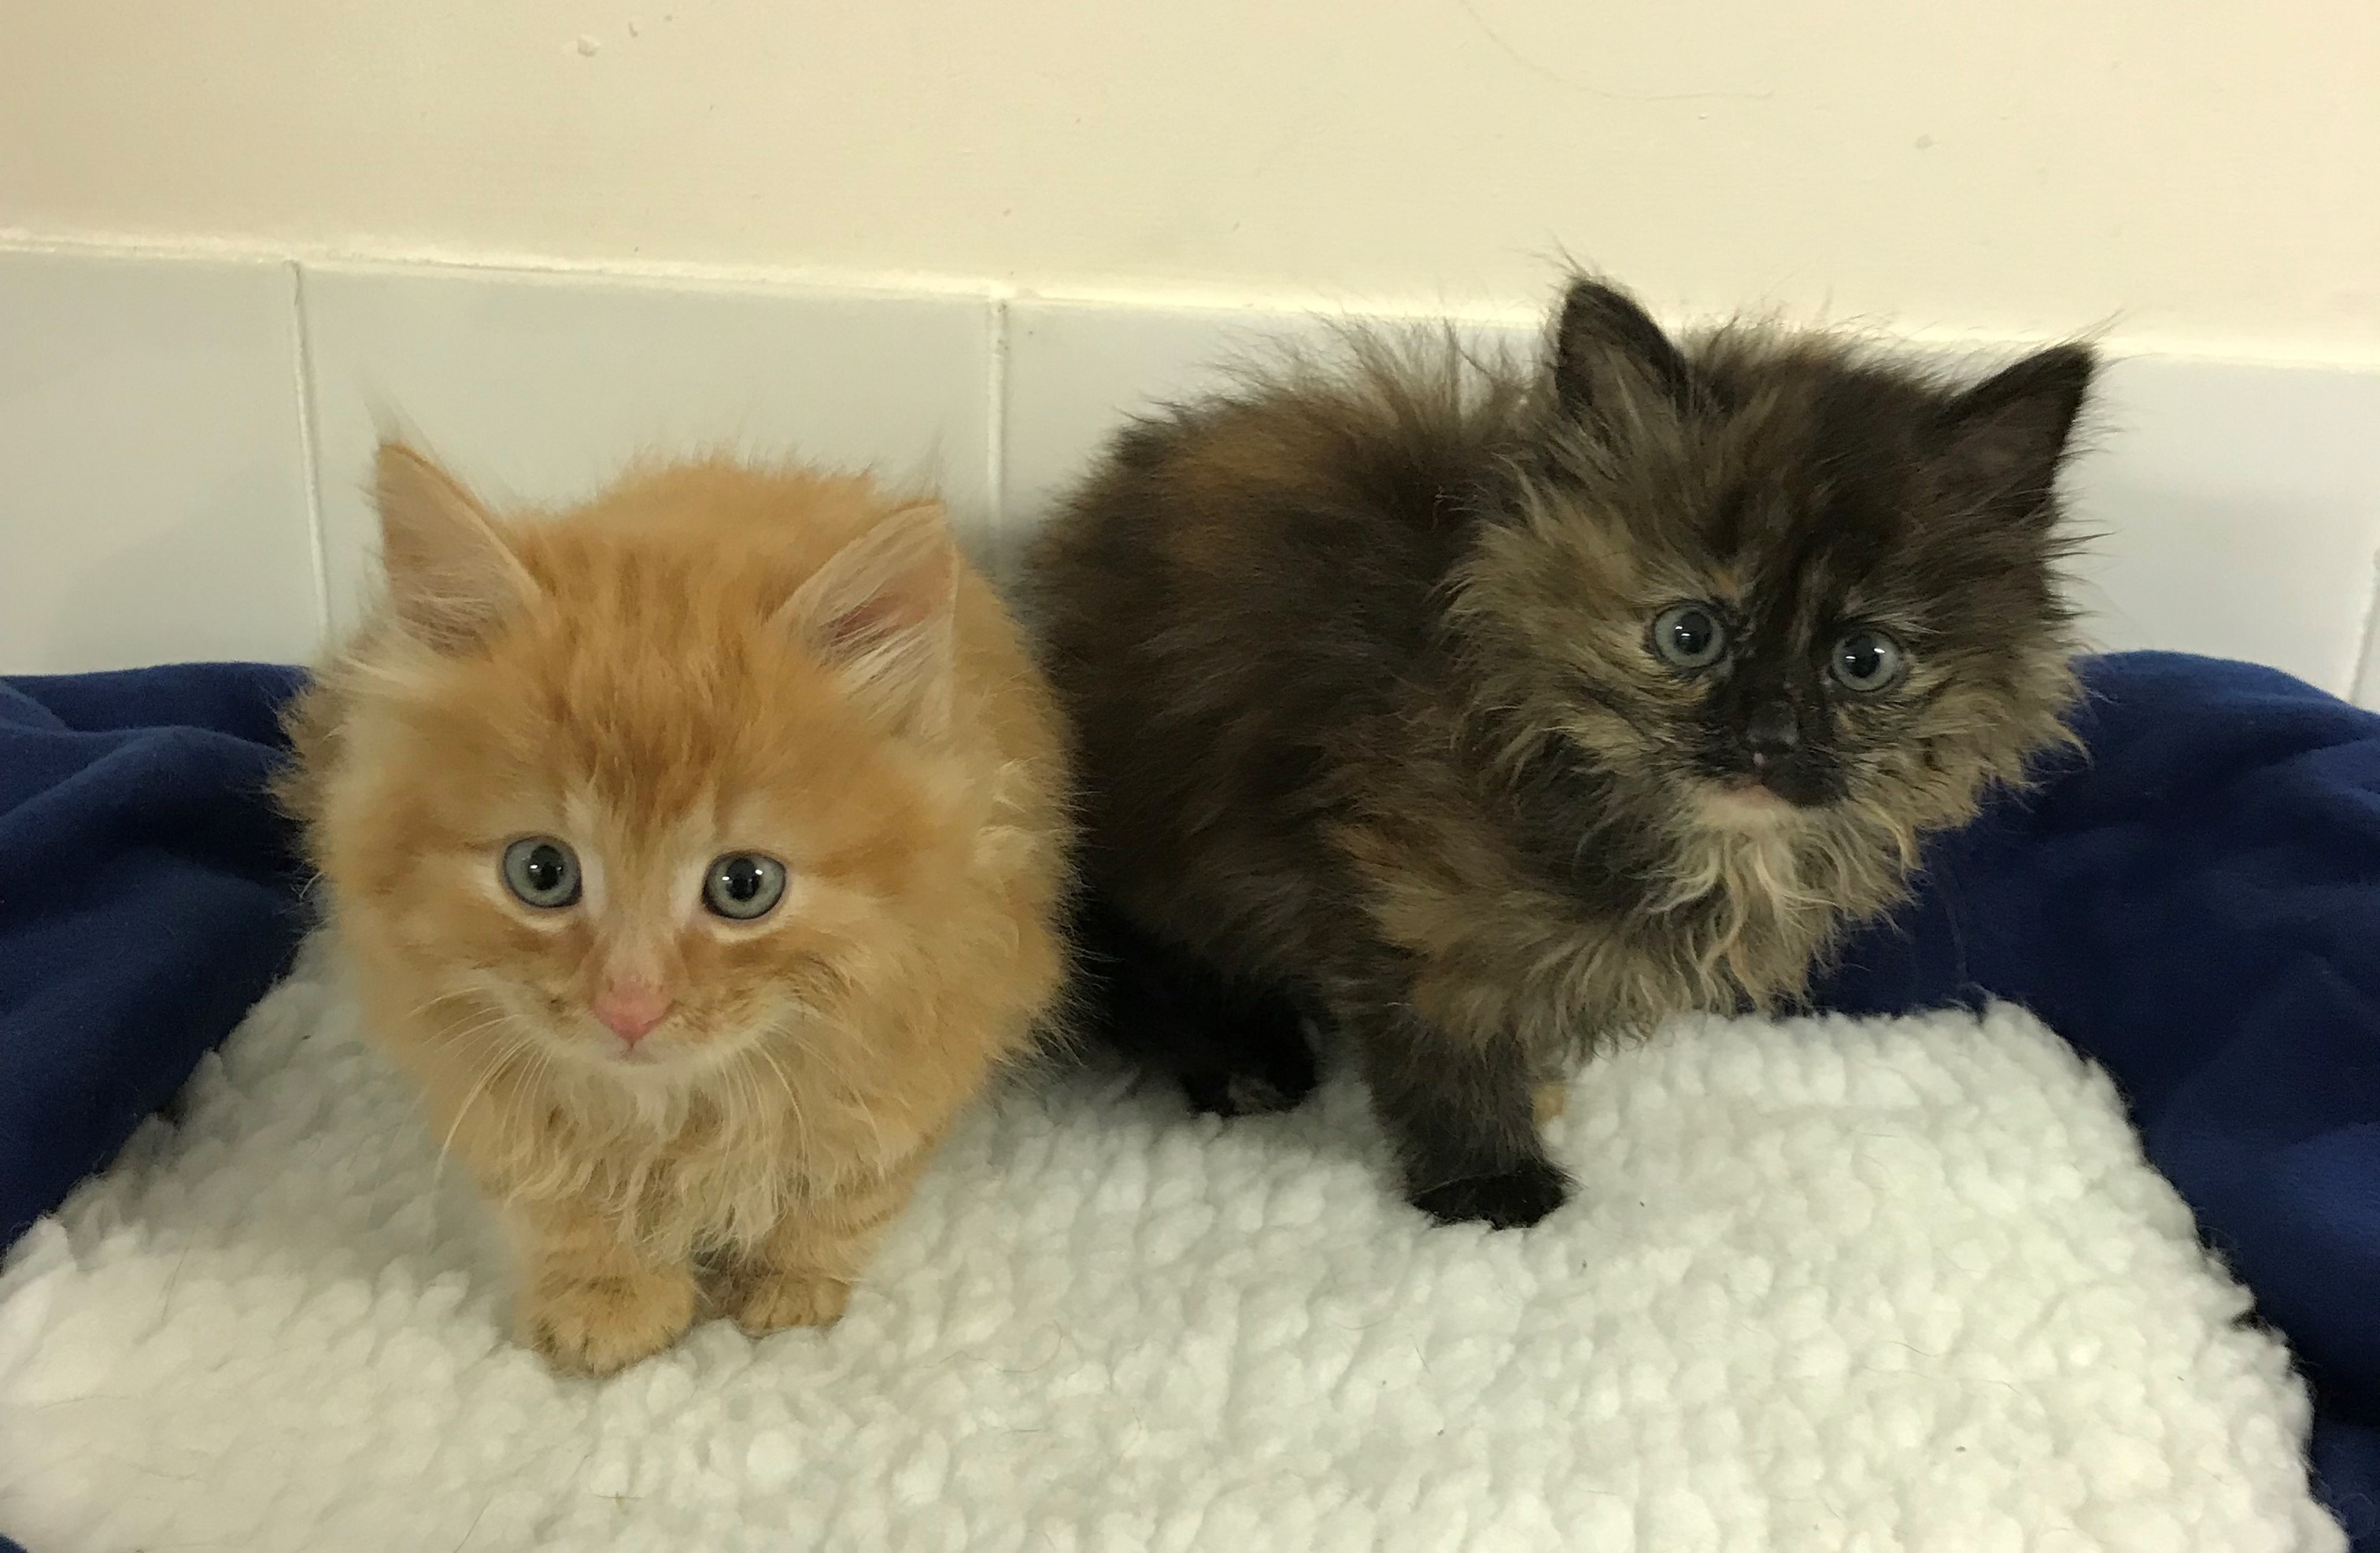 Kittens Harry and Meghan are being cared for in Inverness